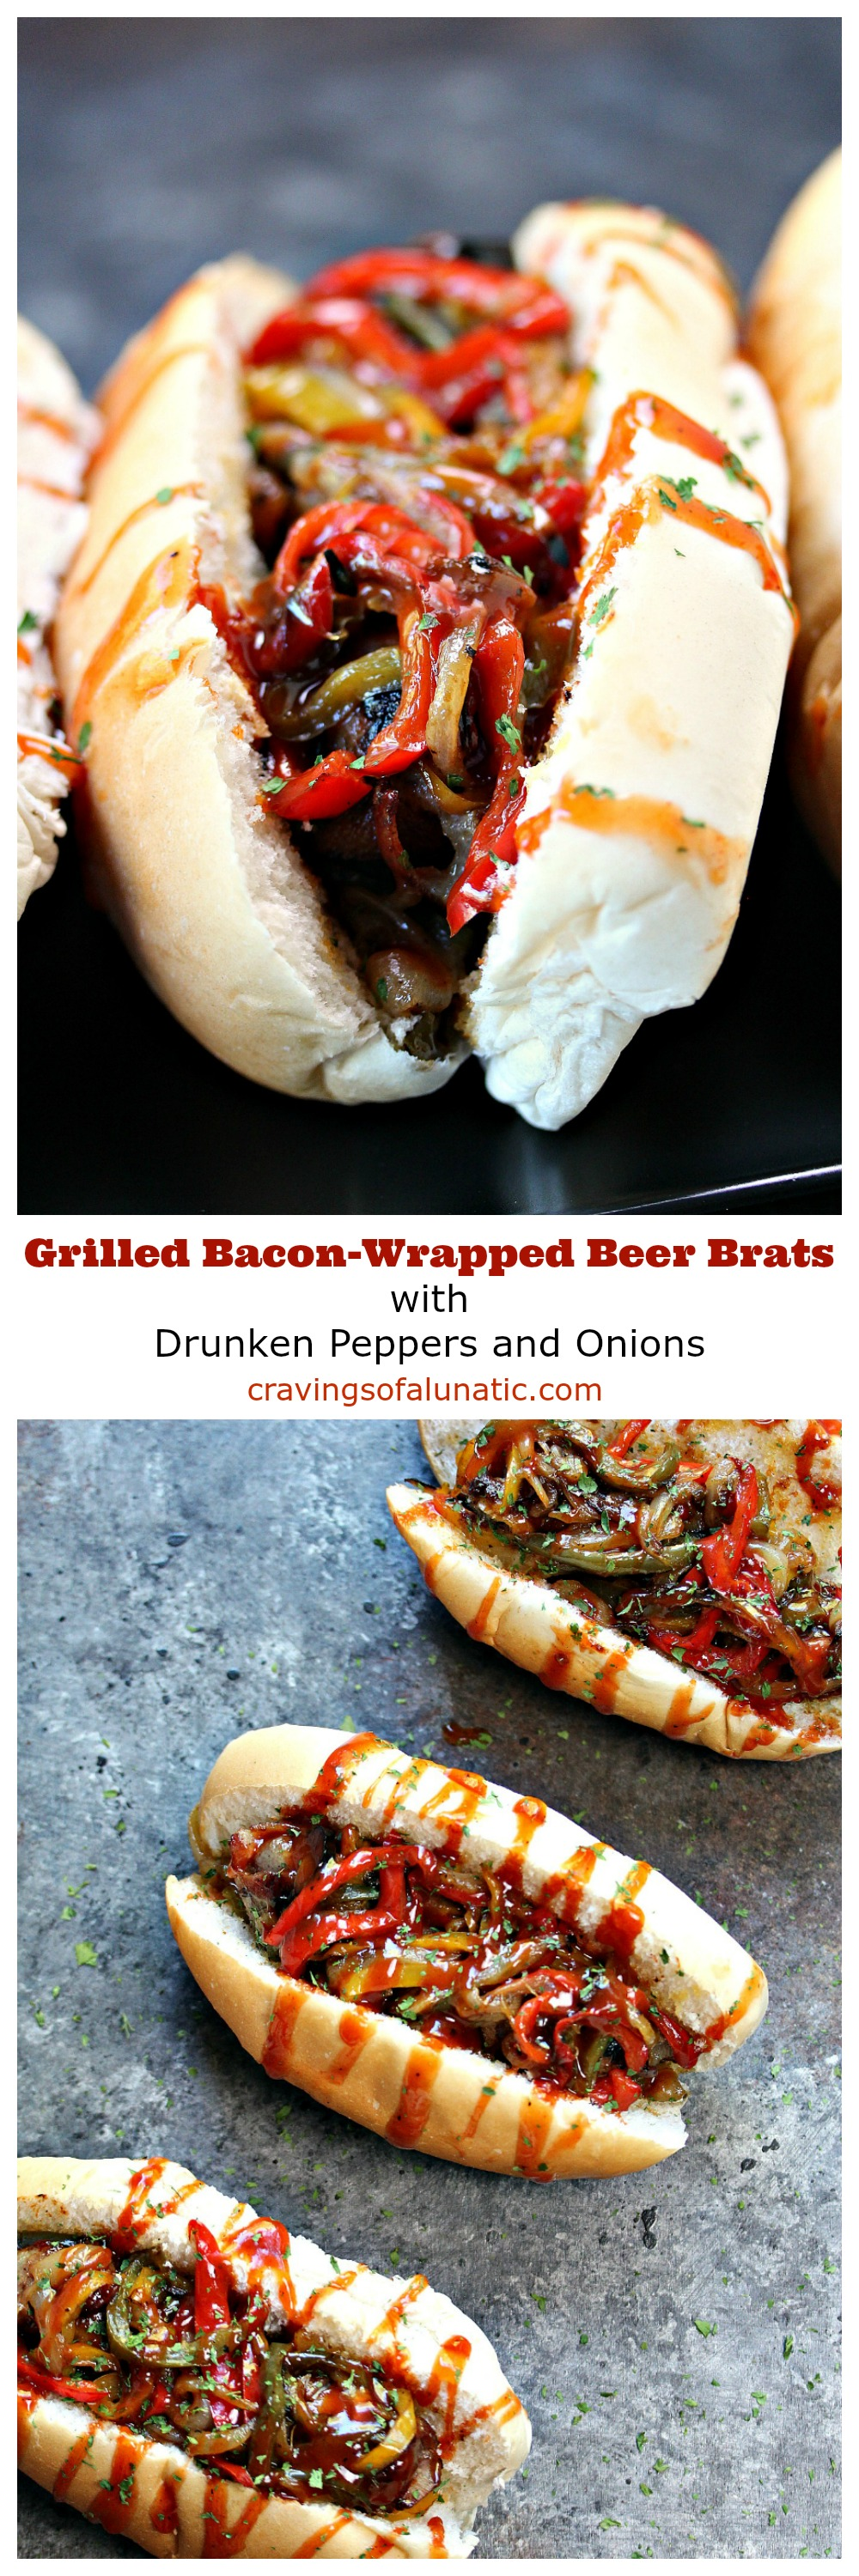 These Grilled Bacon-Wrapped Beer Brats with Drunken Peppers and Onions combine all of your favourite food in one delicious recipe. Fire up that grill and enjoy an epic dinner.